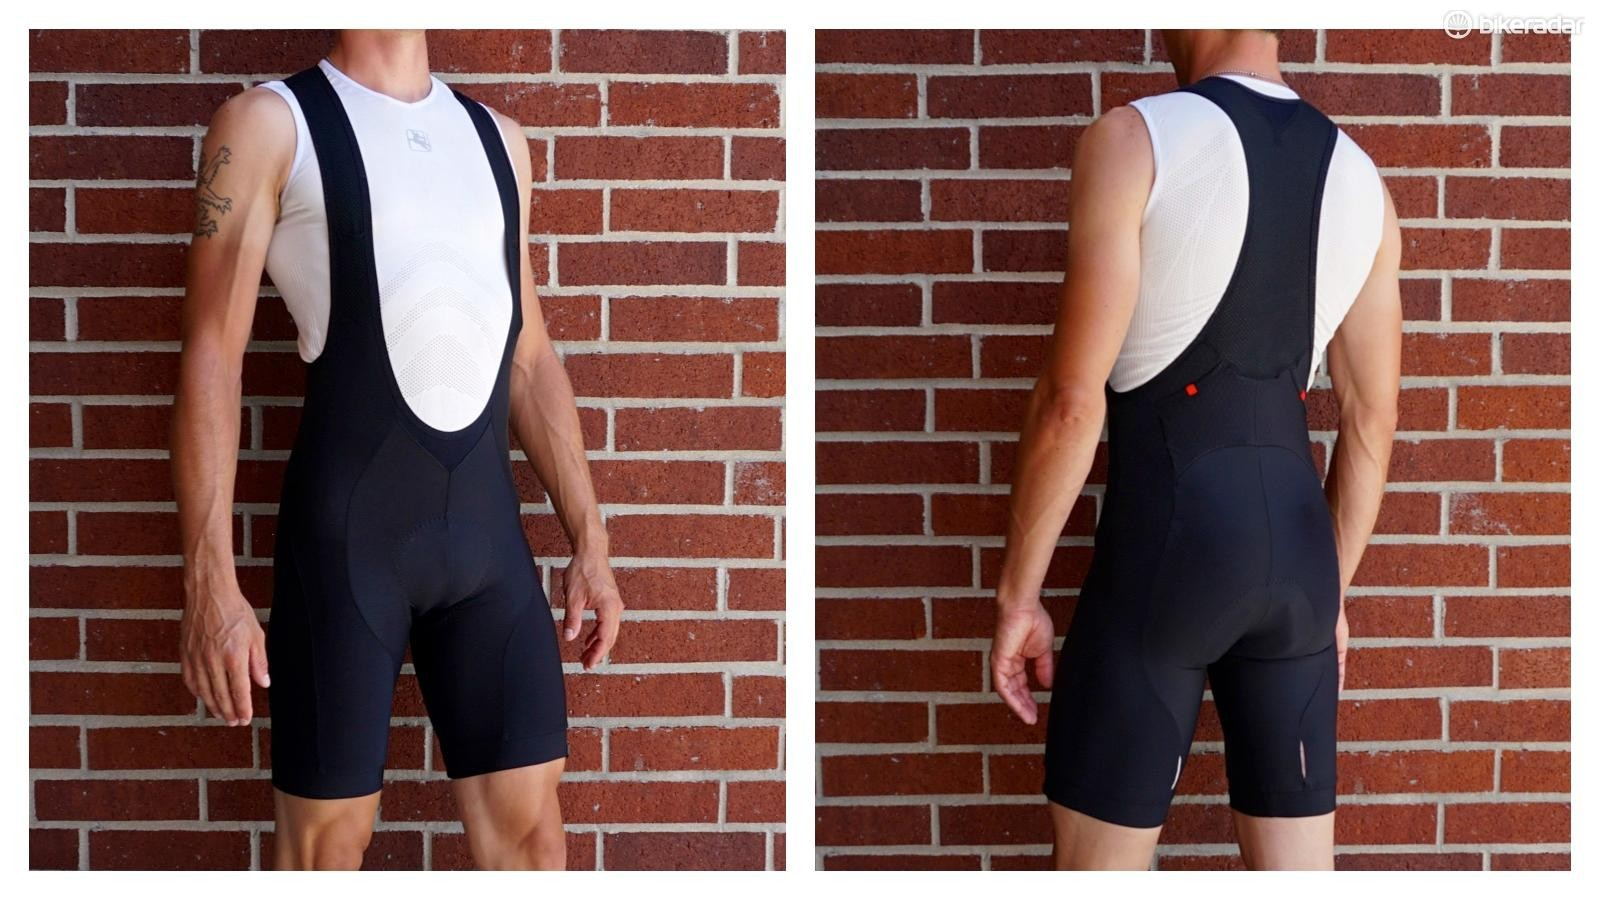 For all-day road rides, the RBX bib has neatly placed pockets in the upper